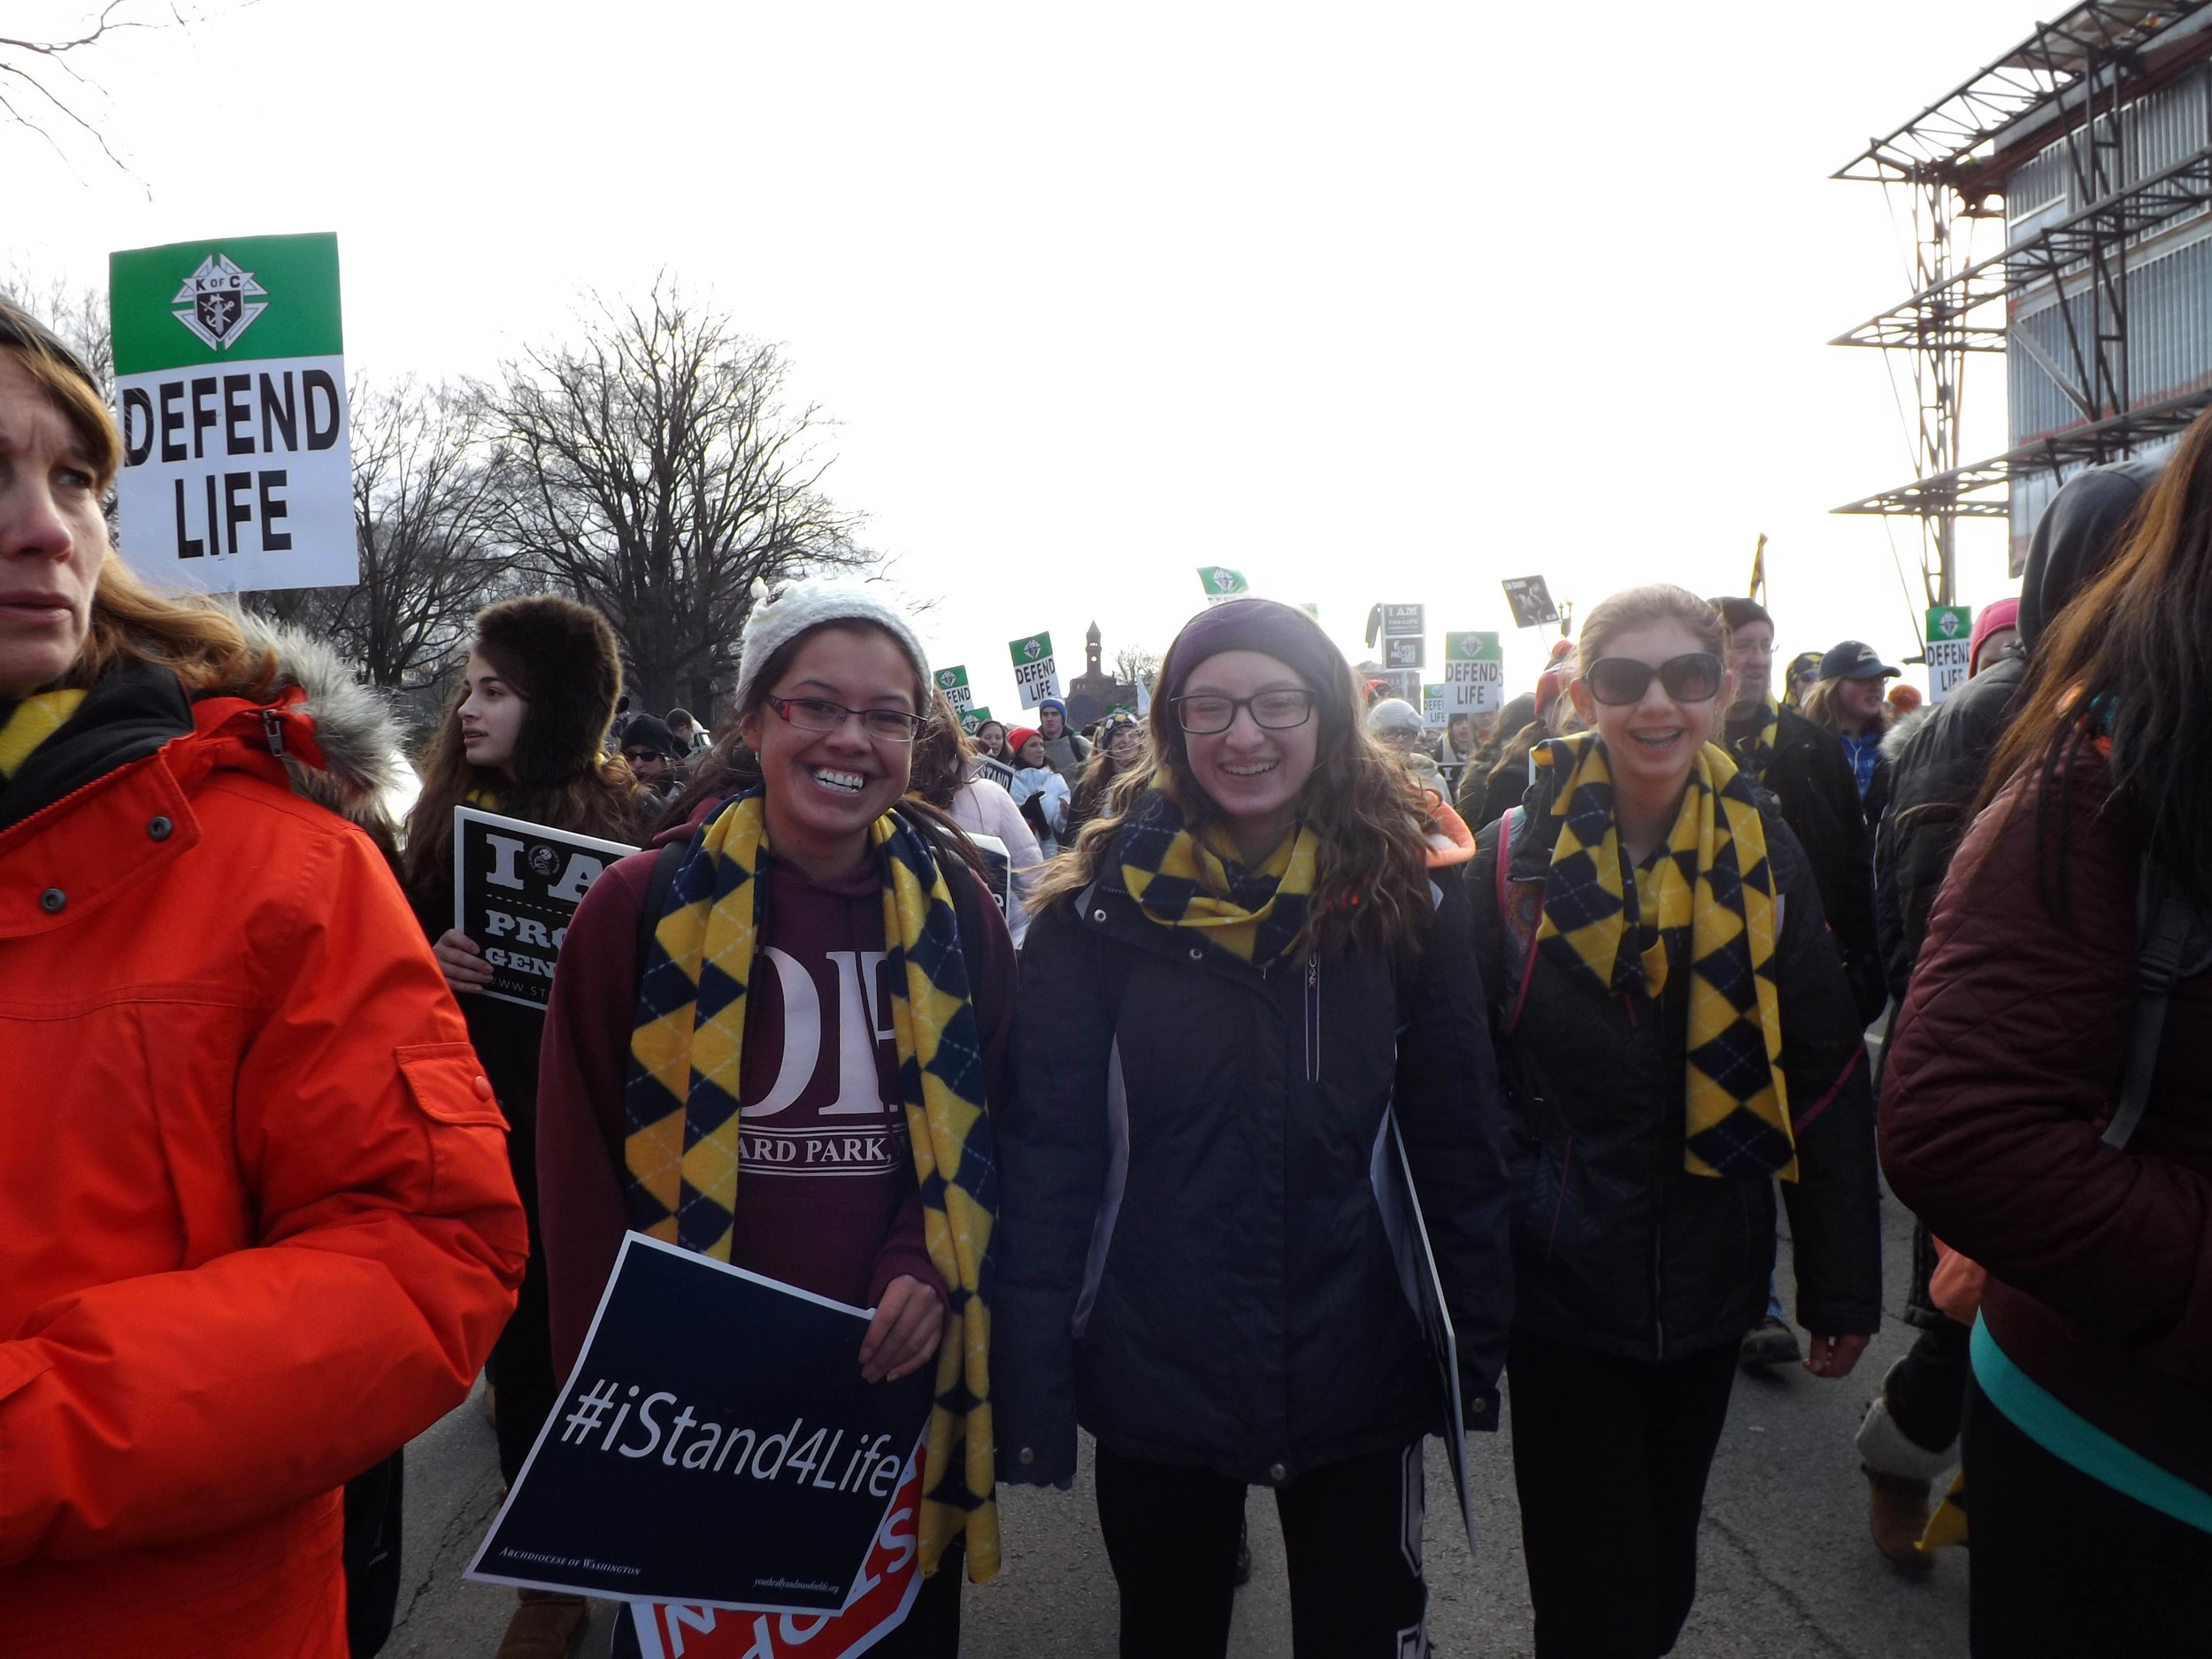 March for Life - Chesterton